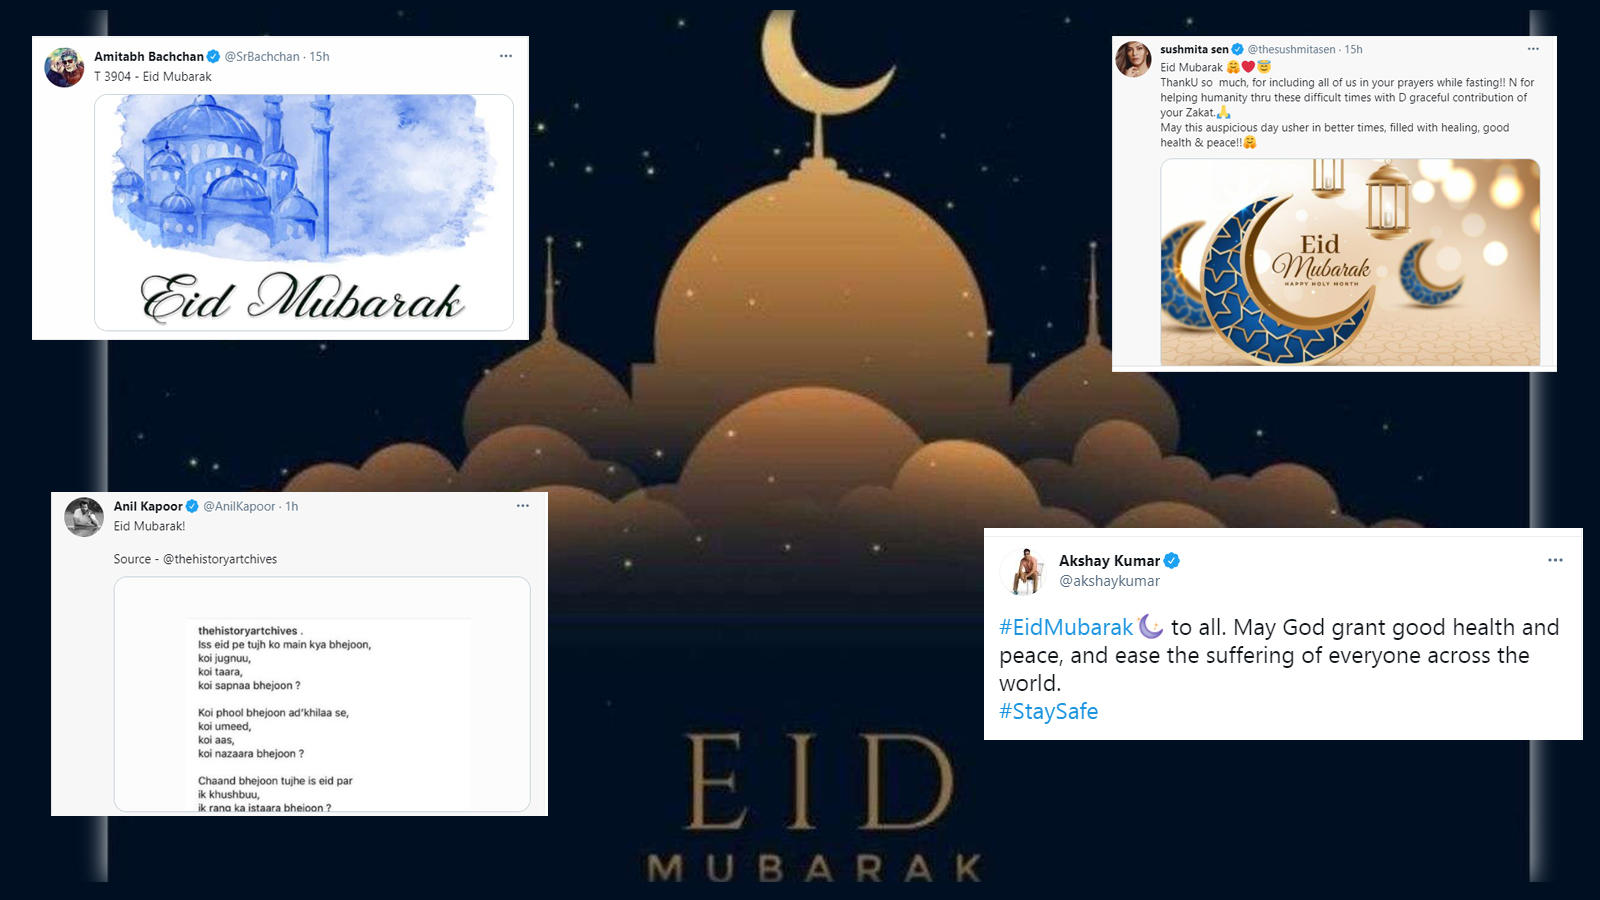 eid-ul-fitr-2021-amitabh-bachchan-anil-kapoor-sushmita-sen-akshay-kumar-among-others-wish-a-happy-eid-to-fans